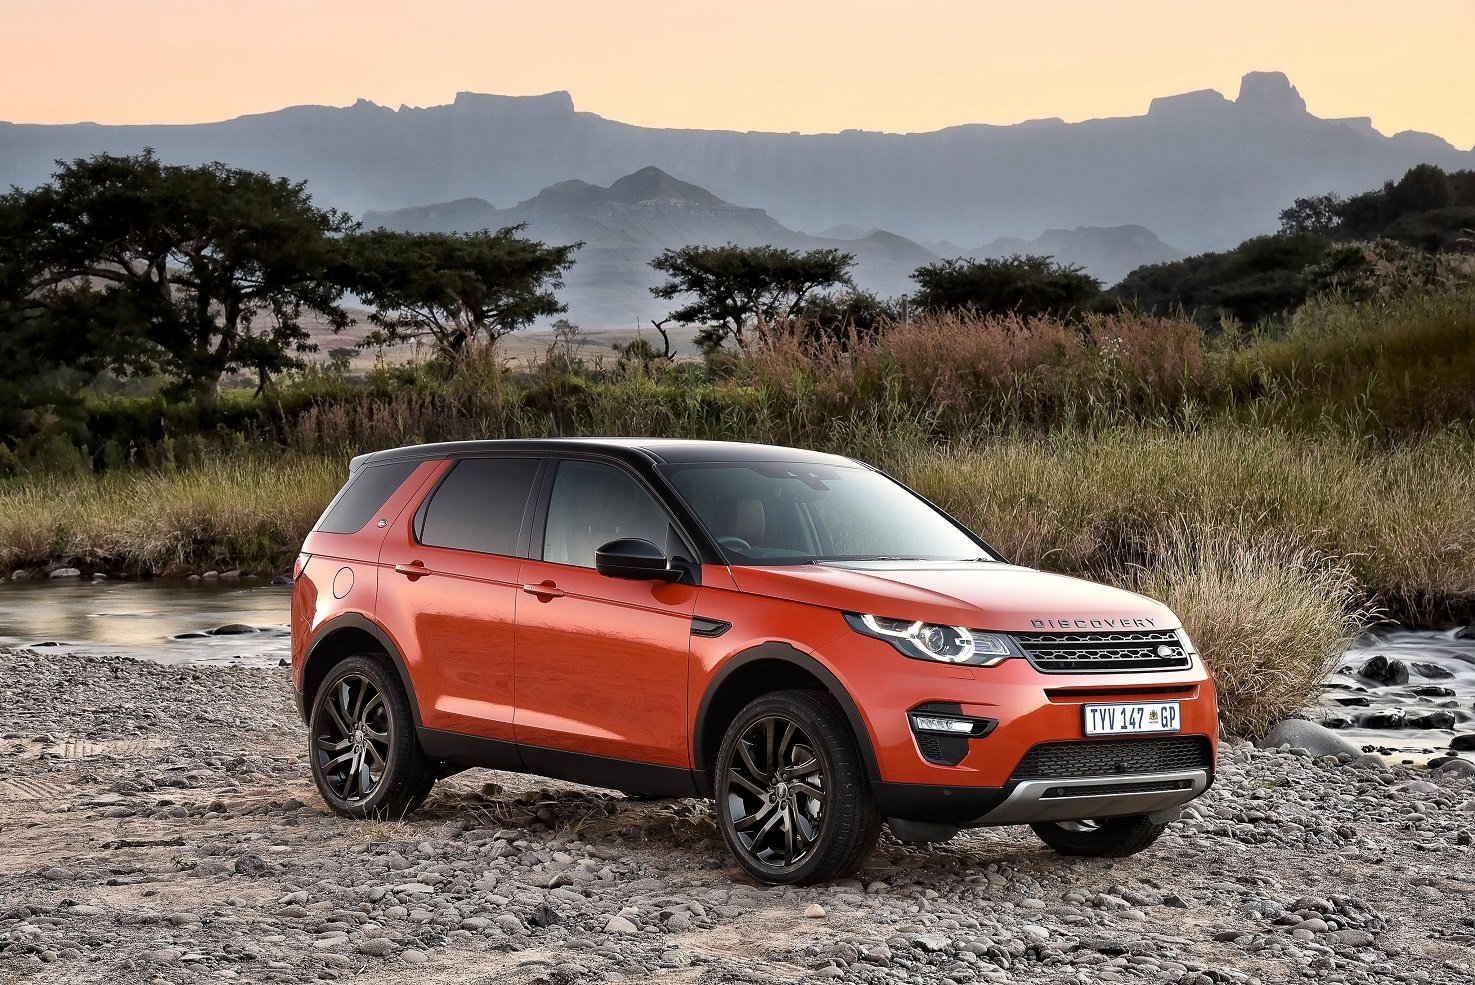 land rover discovery sport hse luxury black design pack za spec l550 cars suv 2015 wallpaper. Black Bedroom Furniture Sets. Home Design Ideas